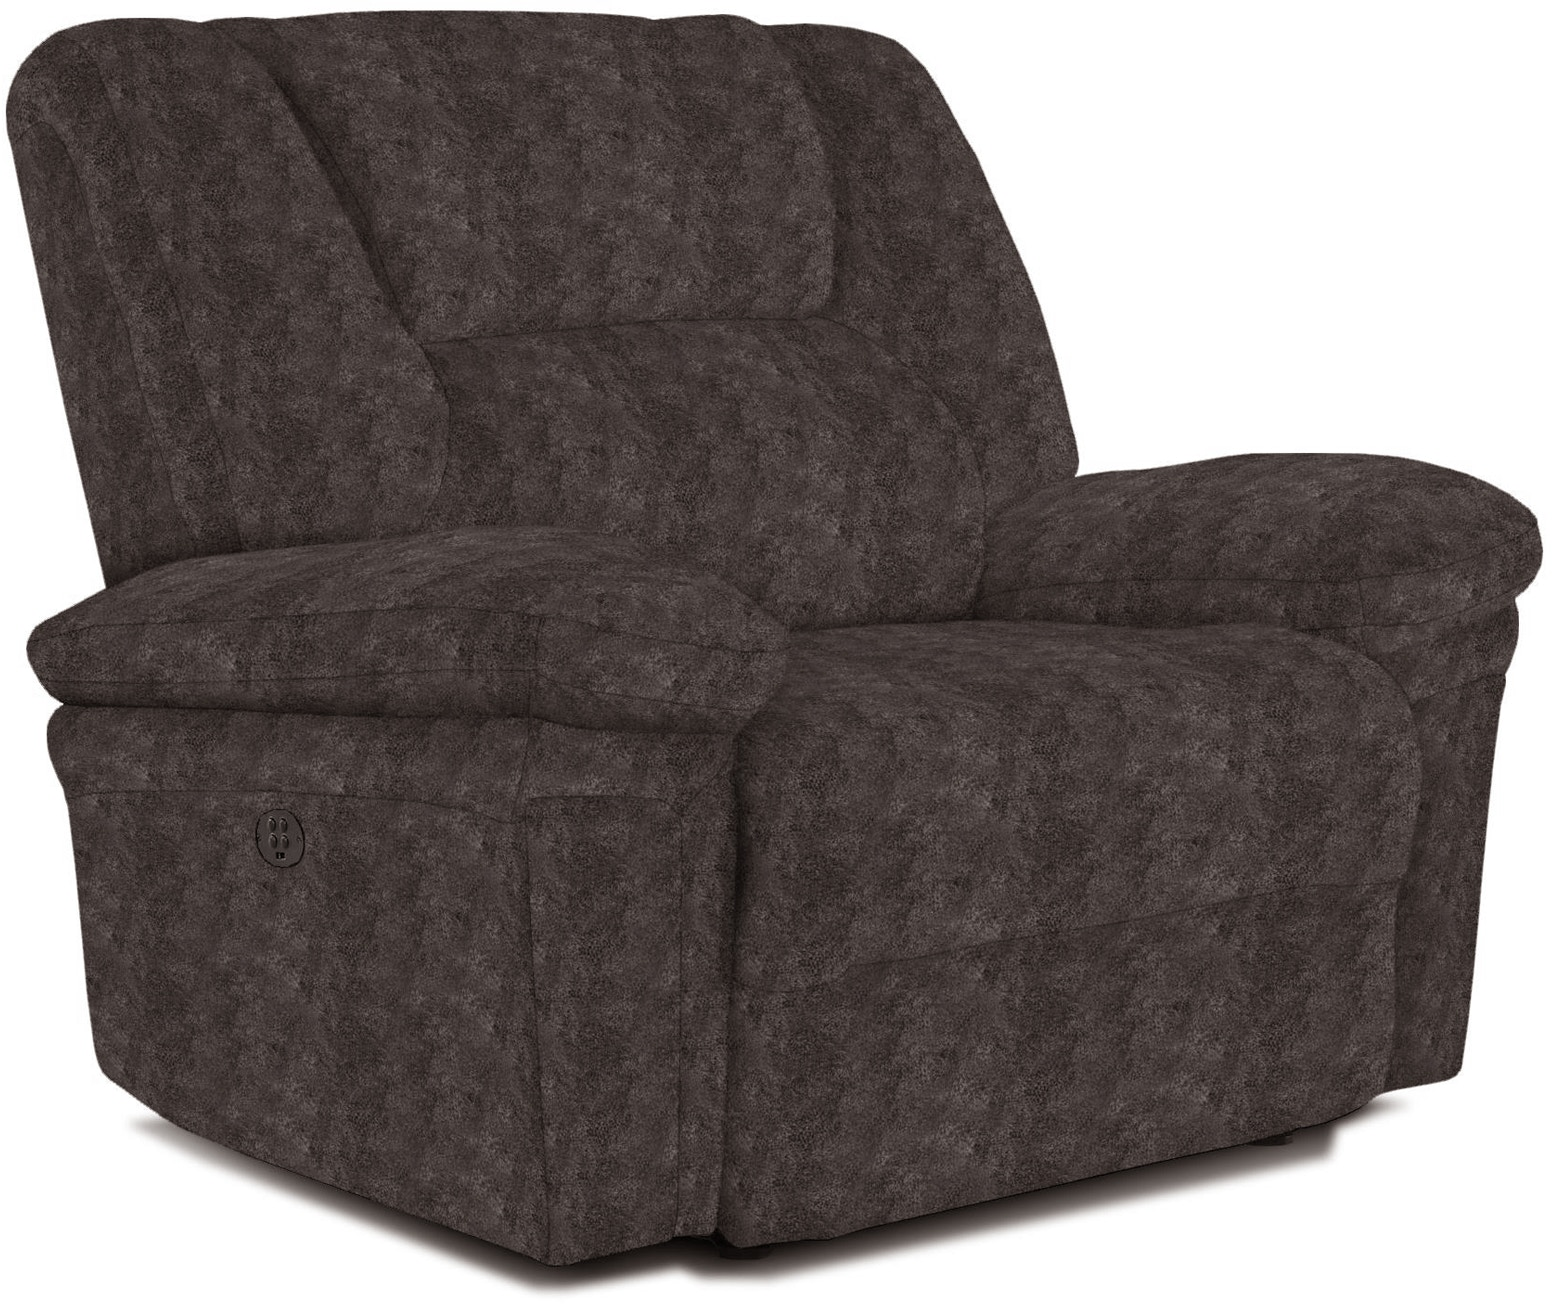 Best Home Furnishings Living Room Parker Chair and Half Power